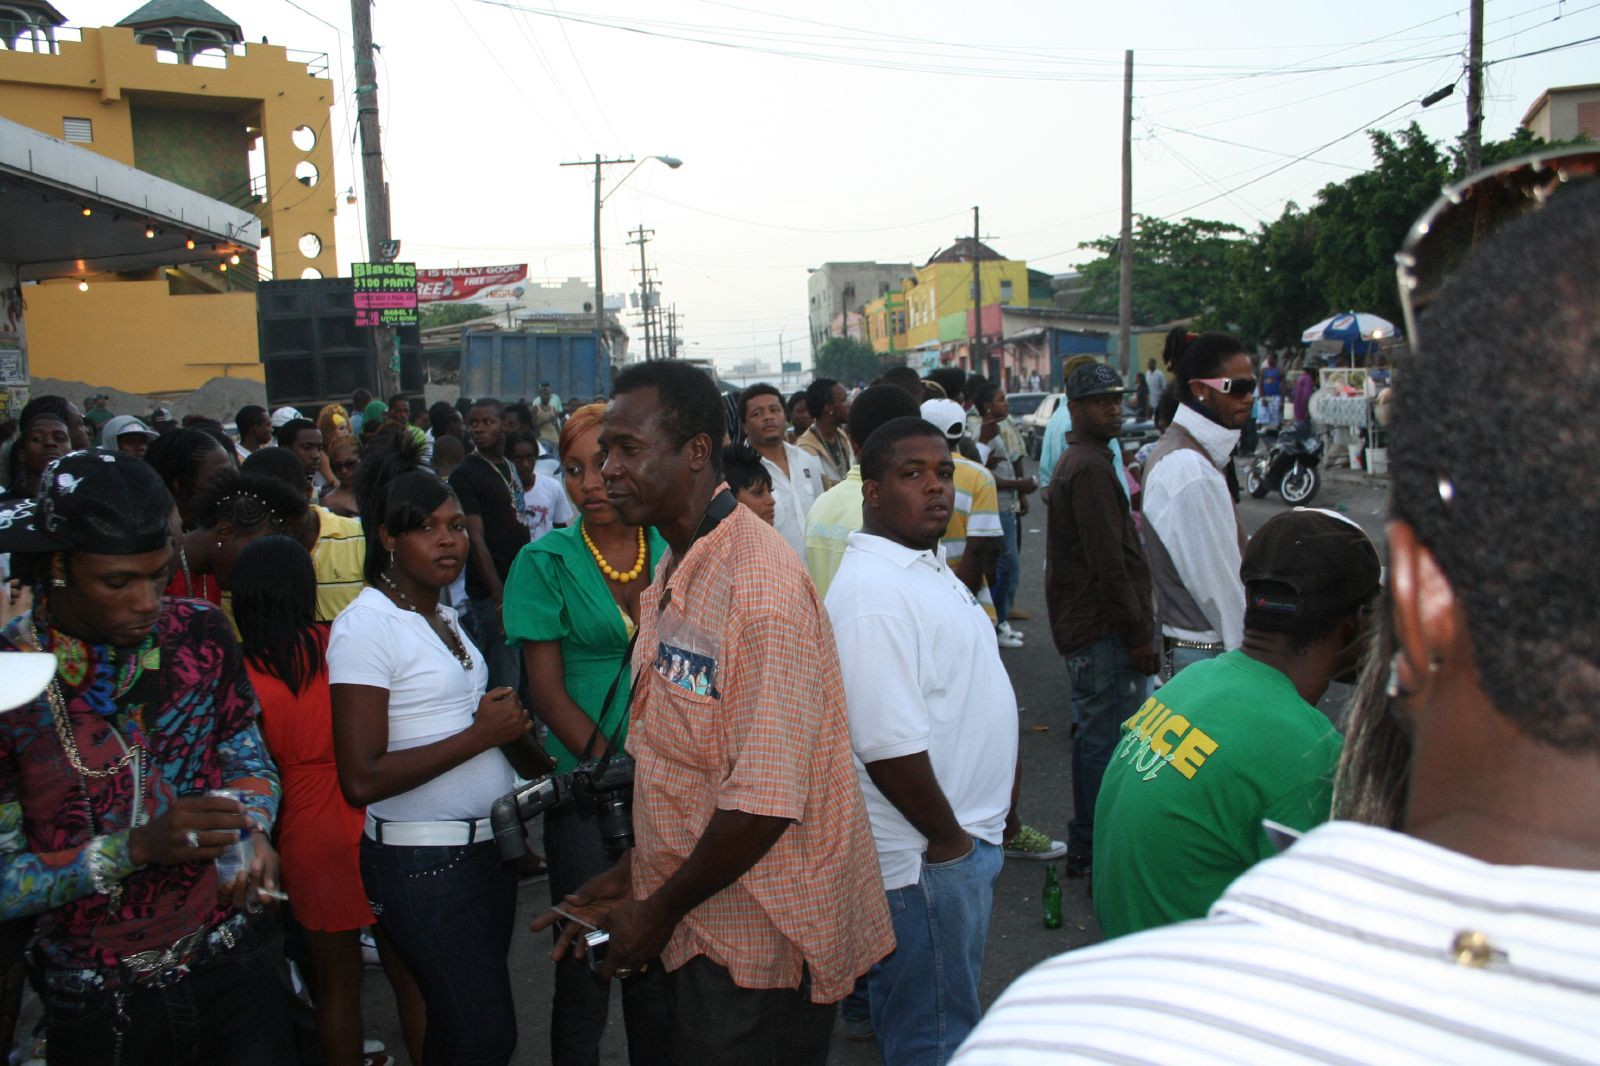 4 Things For Christmas.The 4 Things You Need For An Authentic Jamaican Christmas